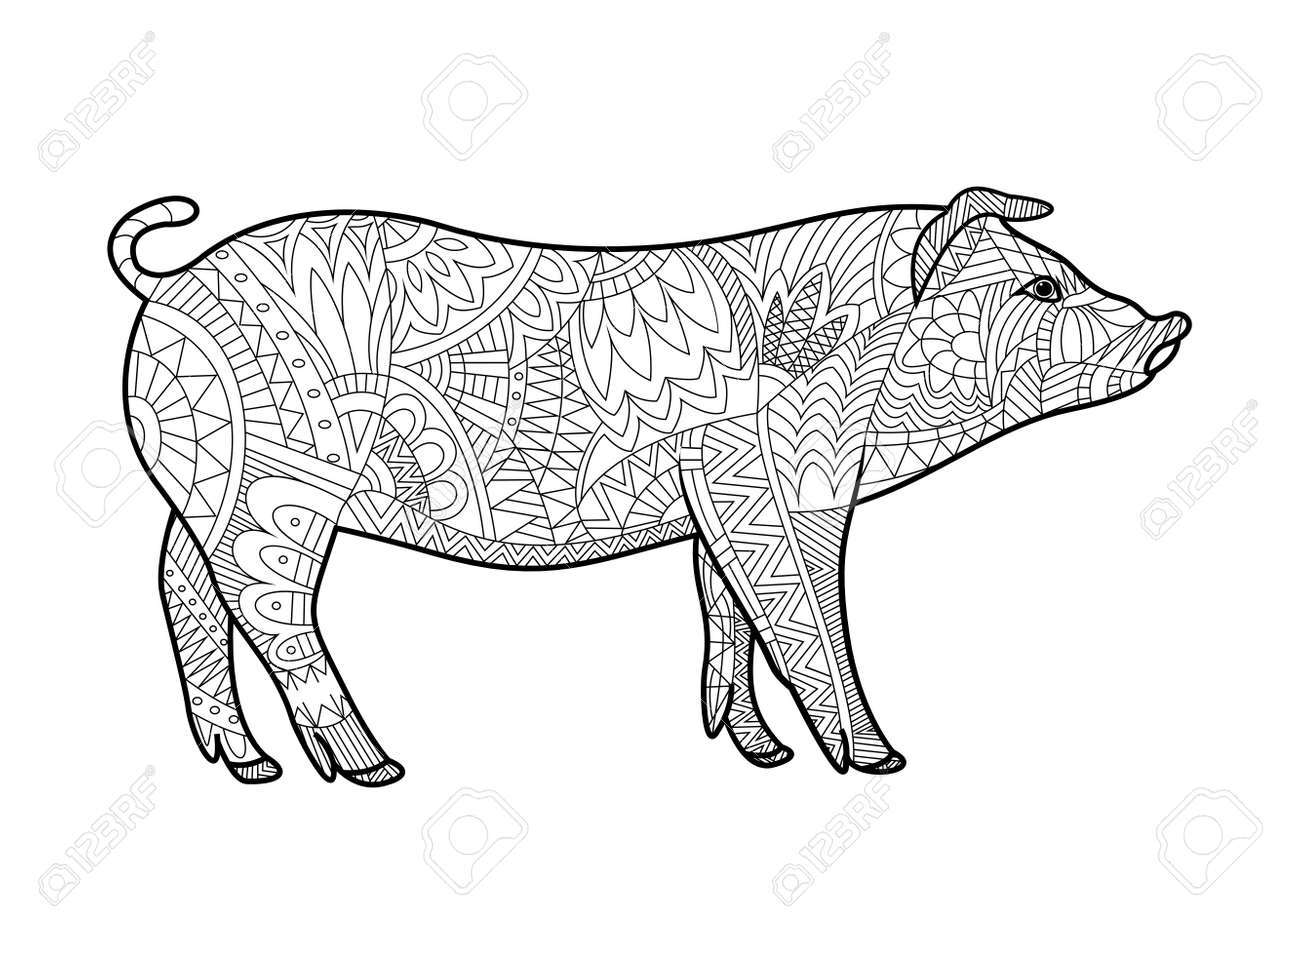 Piggy Animal Coloring Book For Adults Vector Illustration. Anti ...